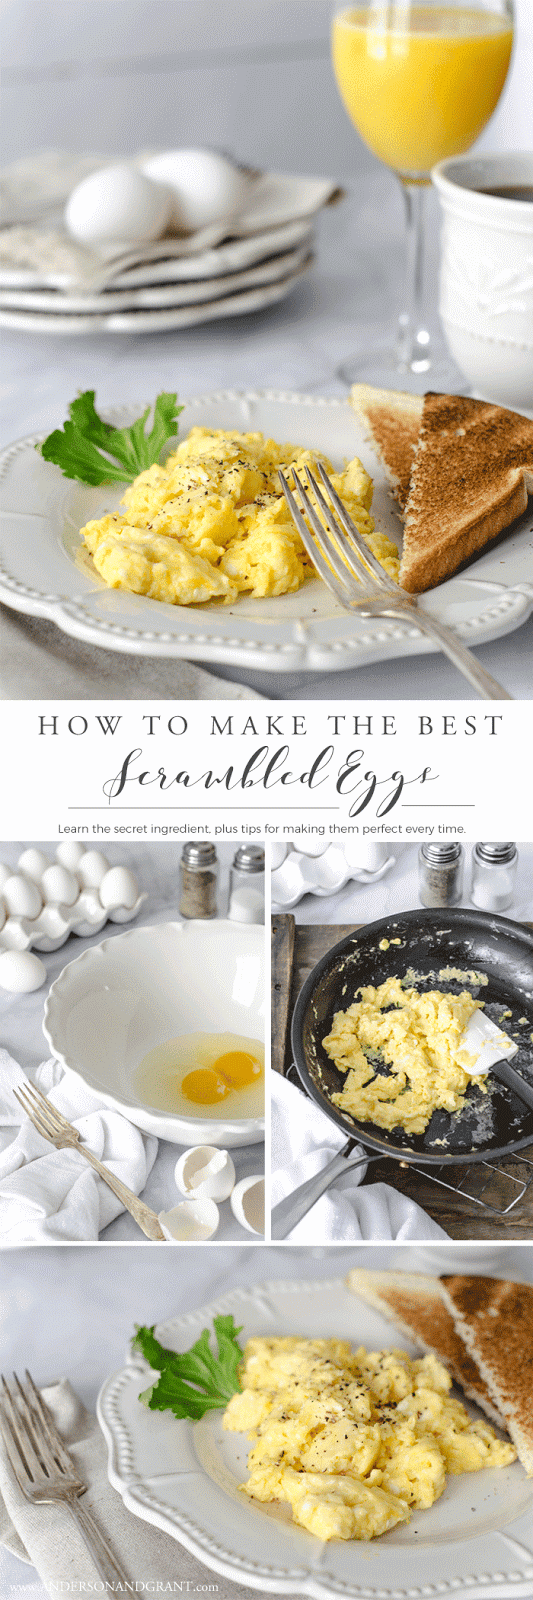 The simple ingredient you should add to your scrambled eggs every time #breakfast #scrambledeggs #recipes #andersonandgrant